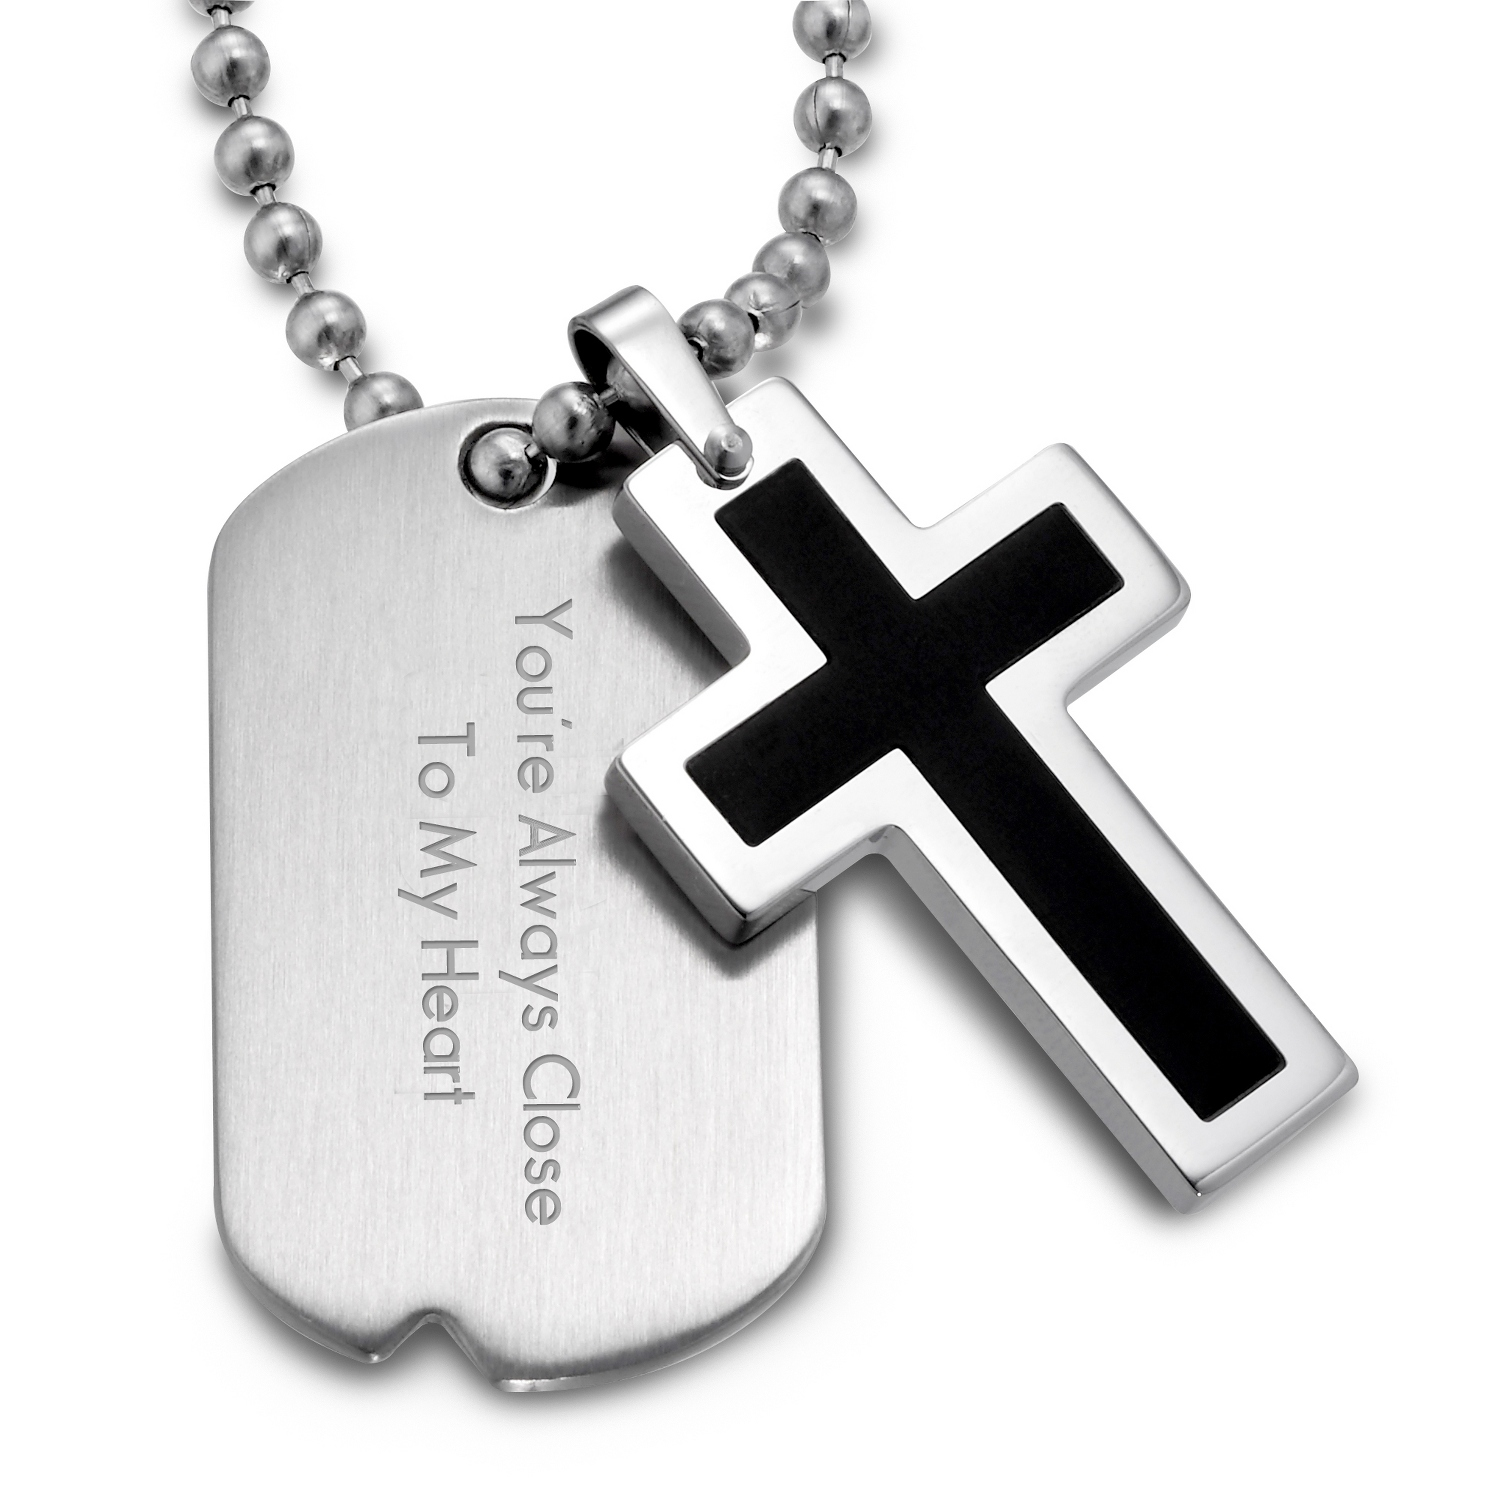 jewellery men baseball and necklace mens uk stainless dp silver co cross pendant steel amazon sterling s chain